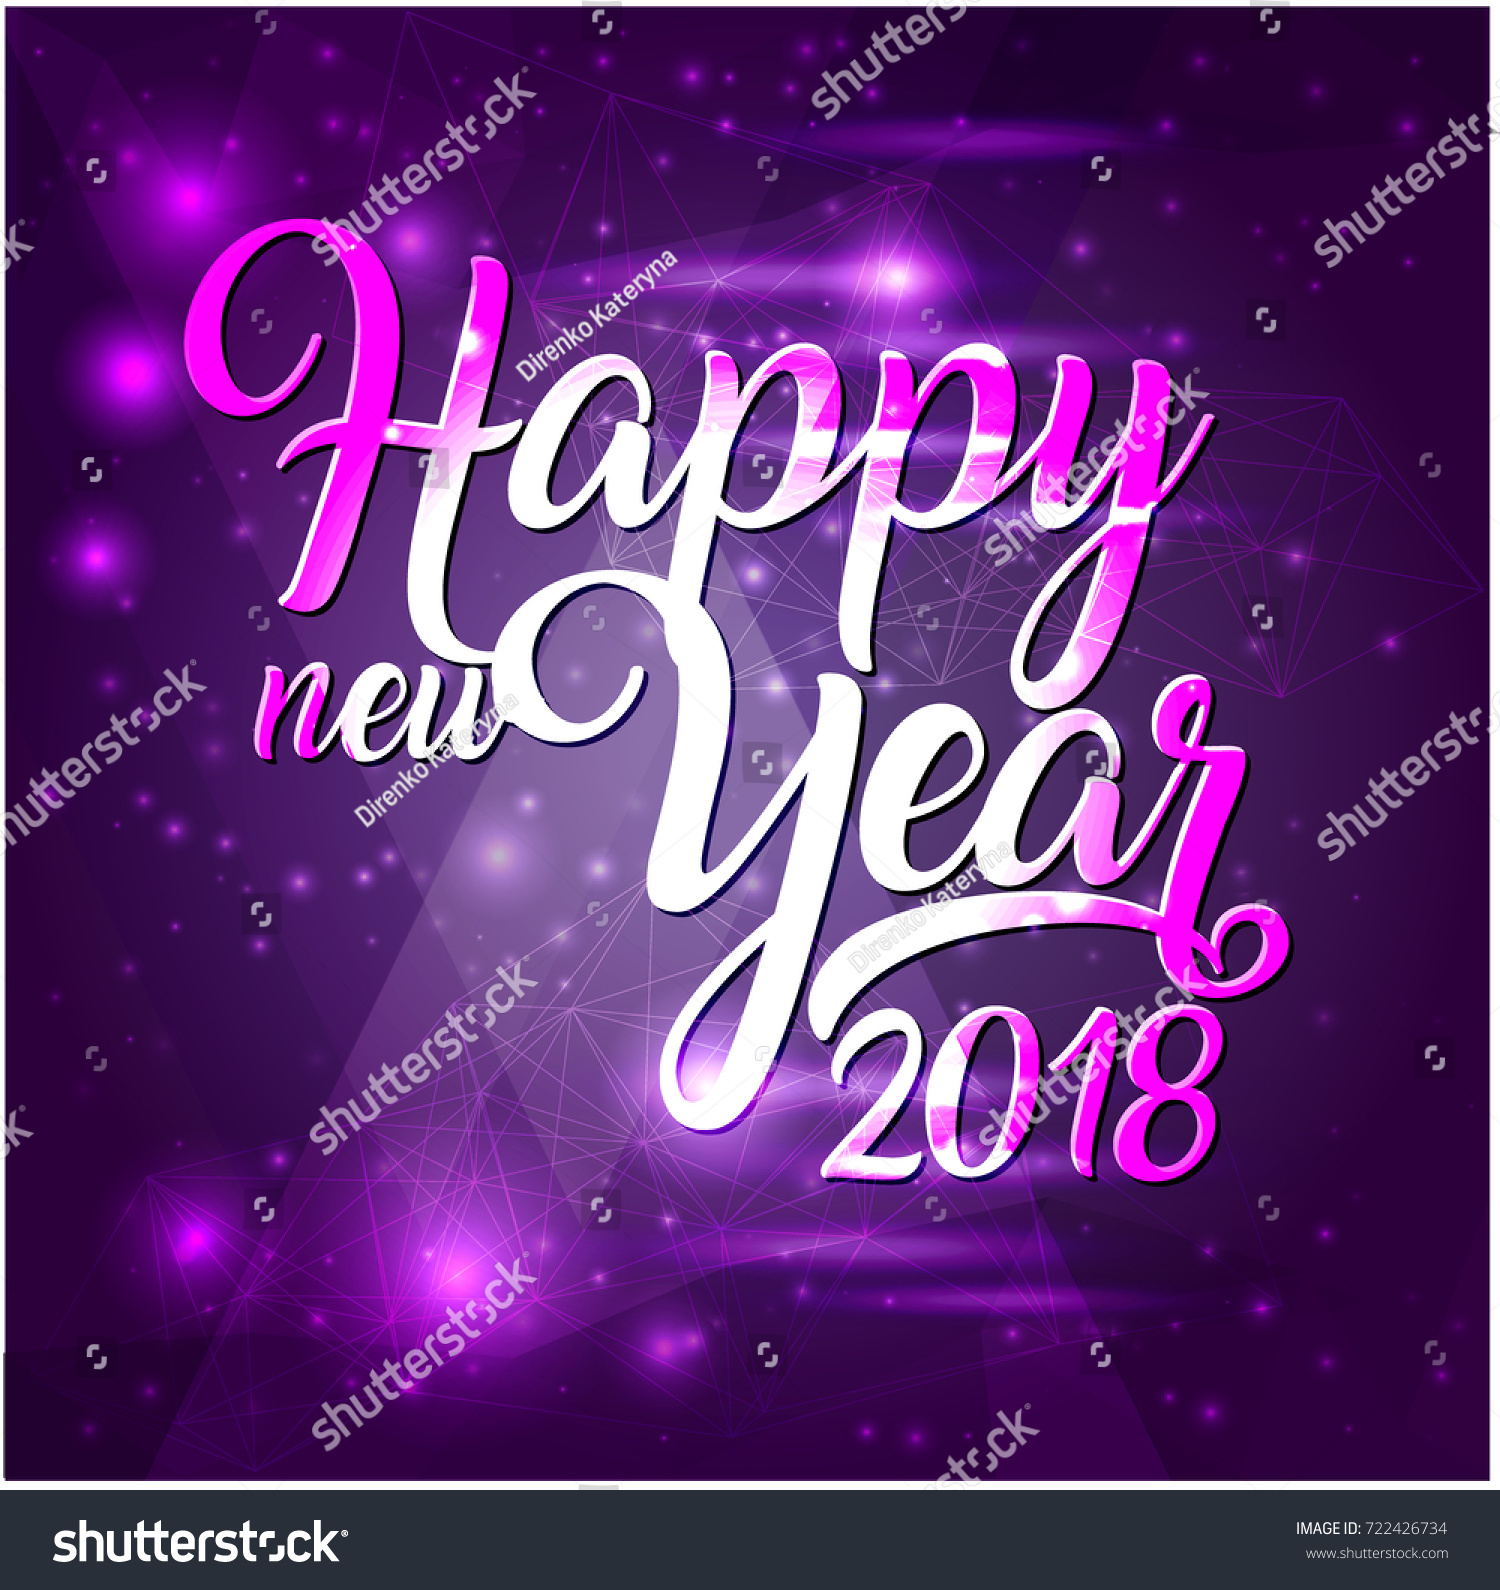 happy new year 2018 lettering on purple futuristic background with sparkles greeting card design template